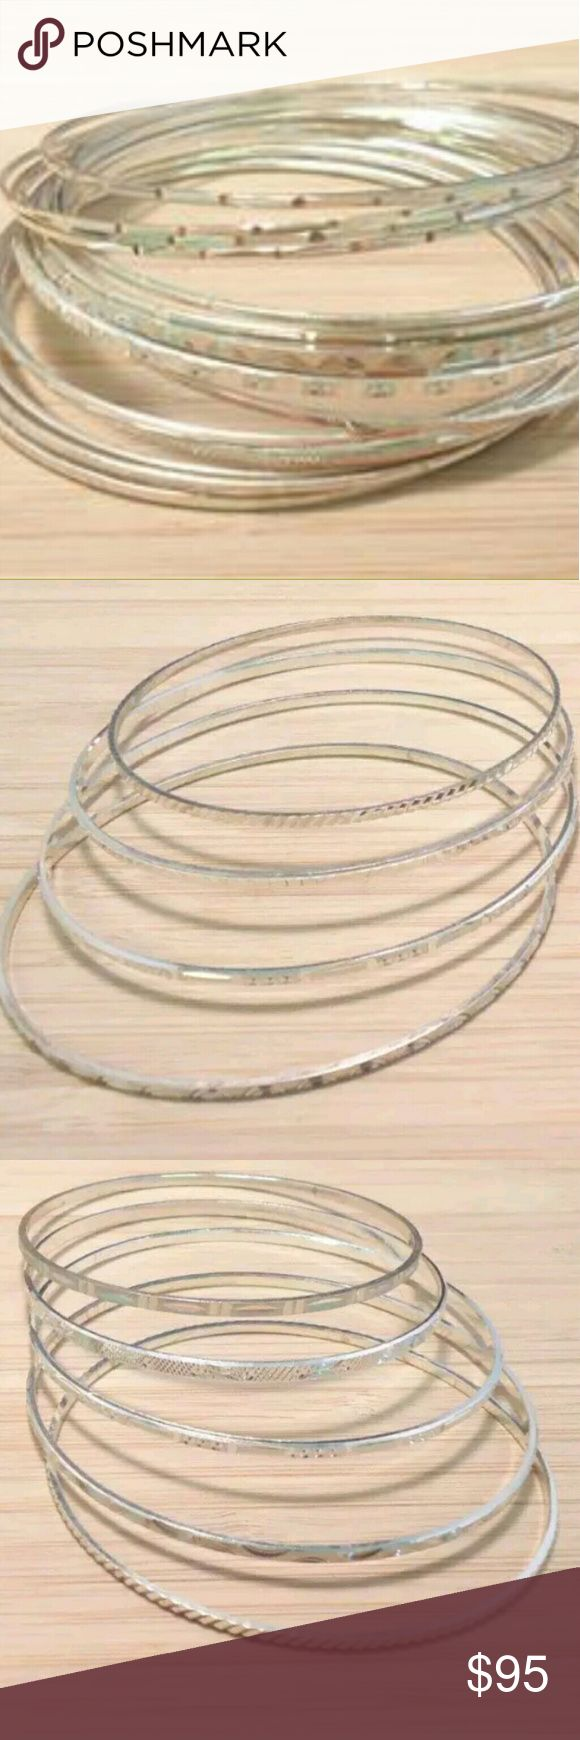 17 Sterling Silver Stackable Bangles 50.5 grams SALE!!!  17 Sterling Silver Stackable Textured Bangles 50.5 grams  I have (15) I wear daily that I love! None of these are dented or bent. In perfect condition. These are for a medium size wrist. They range from 7.25 to 7.50 These are sold as a set, I will not separate.  Just recently cleaned by jeweler.  No trades or try ons Stamped .925 inside rim of bangles  No trades please These were my mothers 50.5 grams of silver.  Alot of weight 😊…